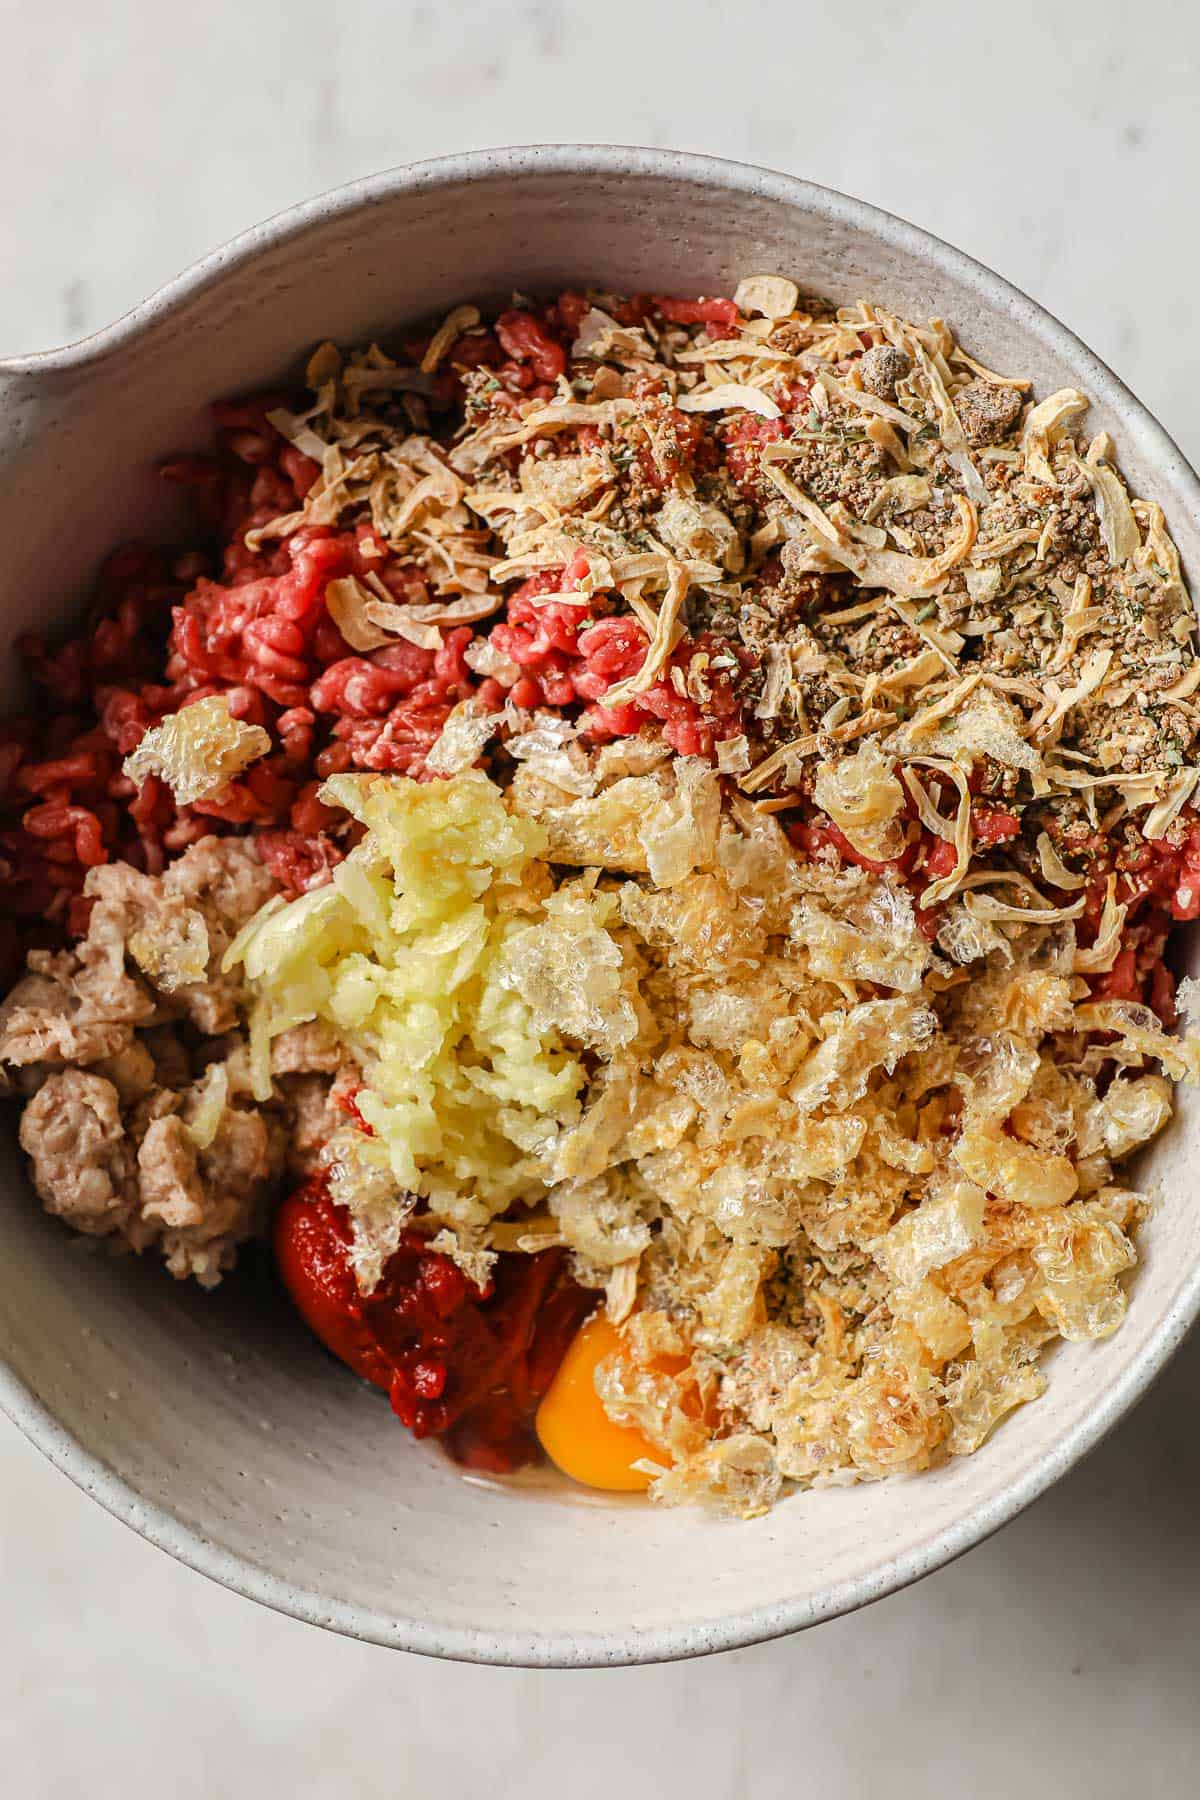 ingredients for meatloaf - beef, sausage, tomato paste, eggs, onion soup, garlic in a mixing bowl